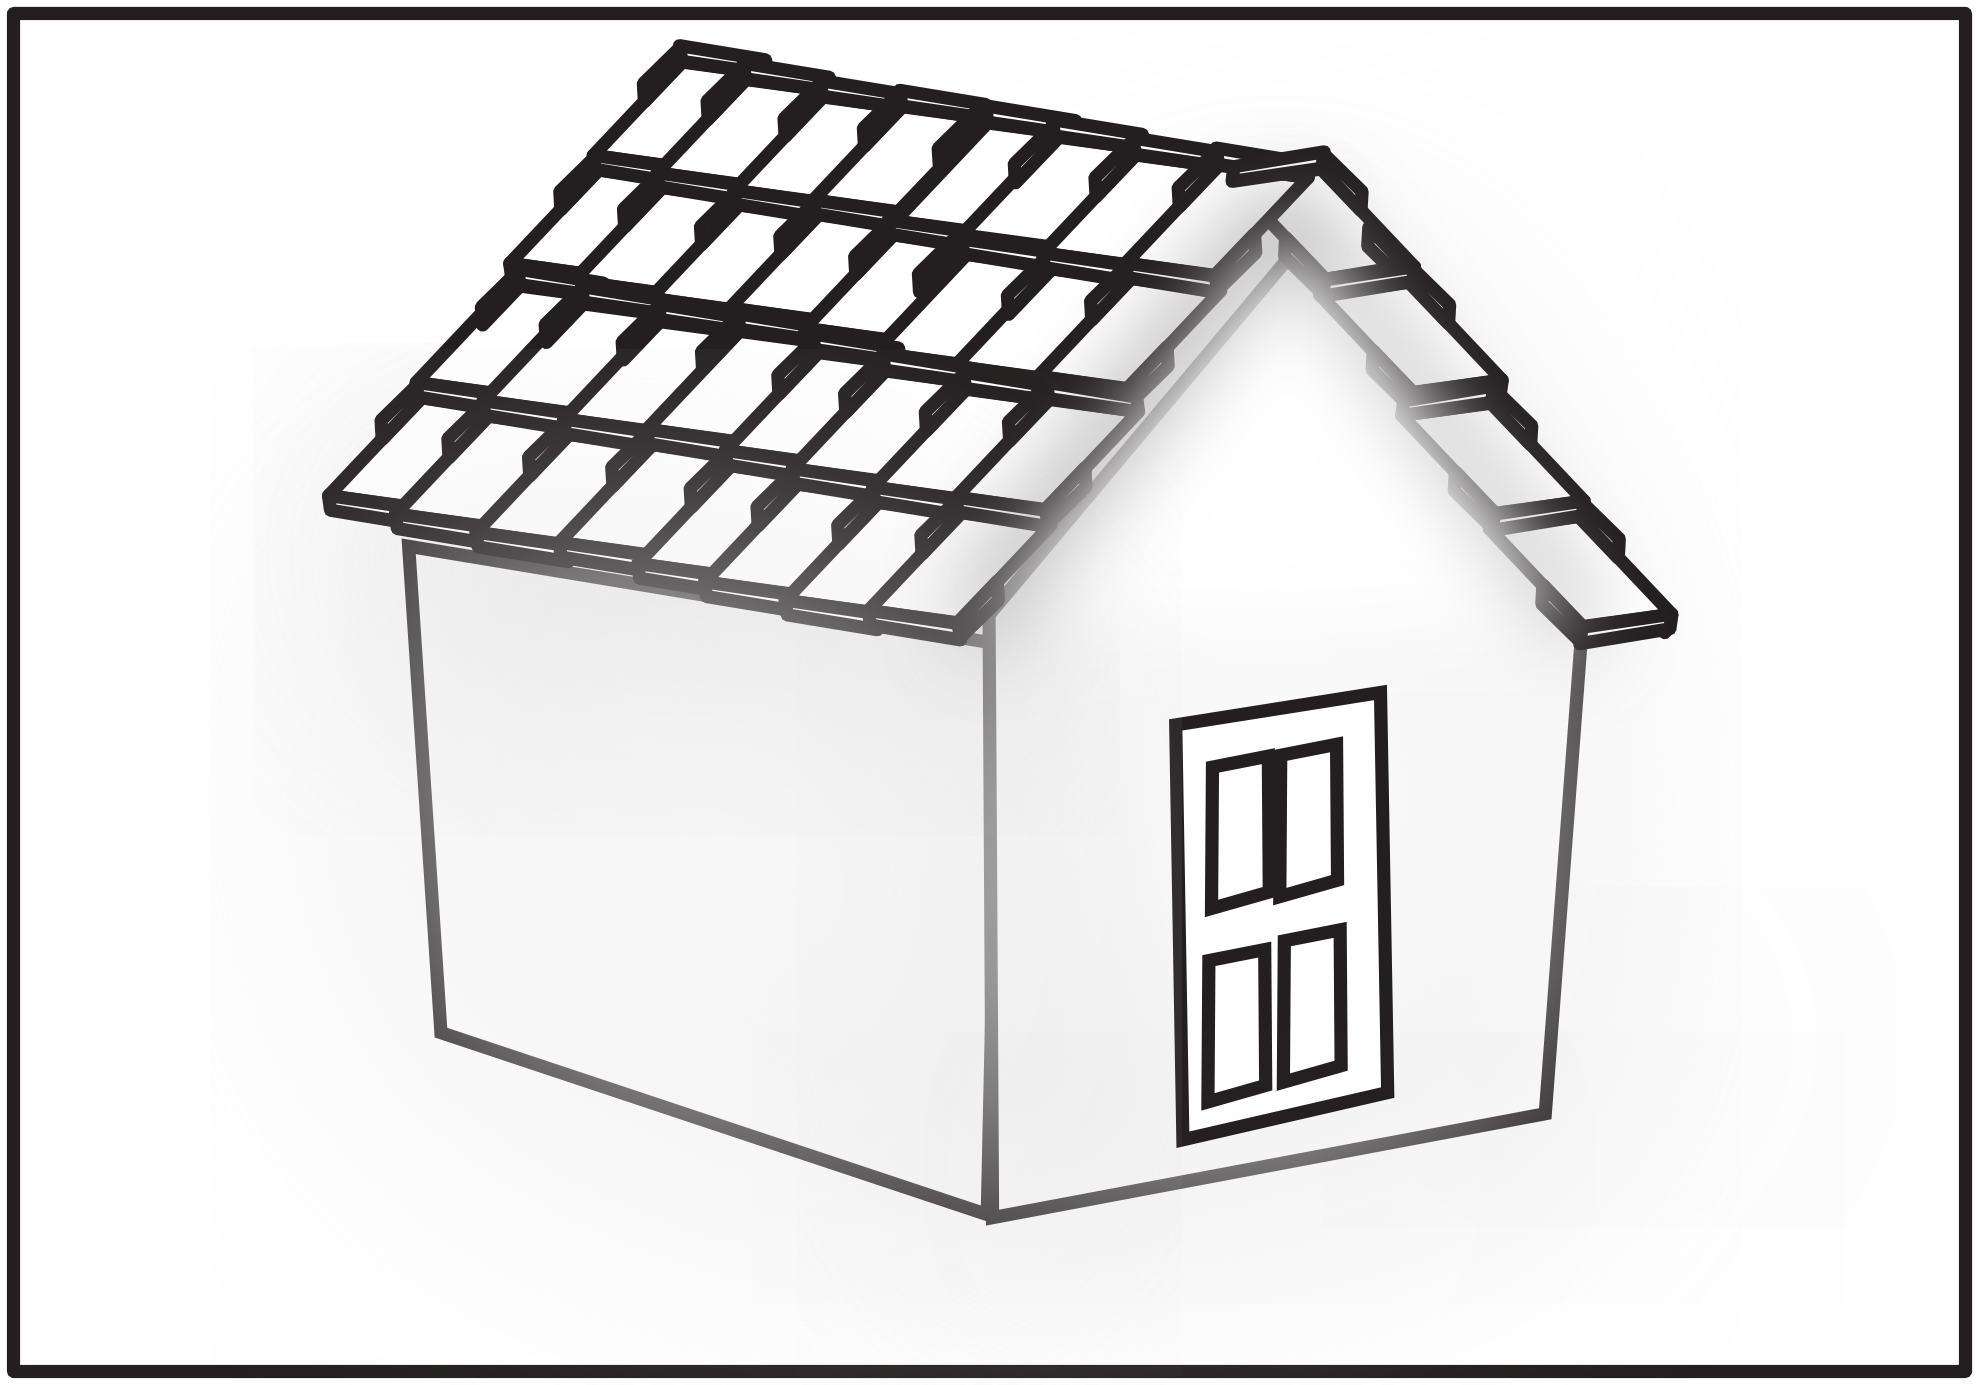 House  black and white roof clipart black and white pencil in color roof